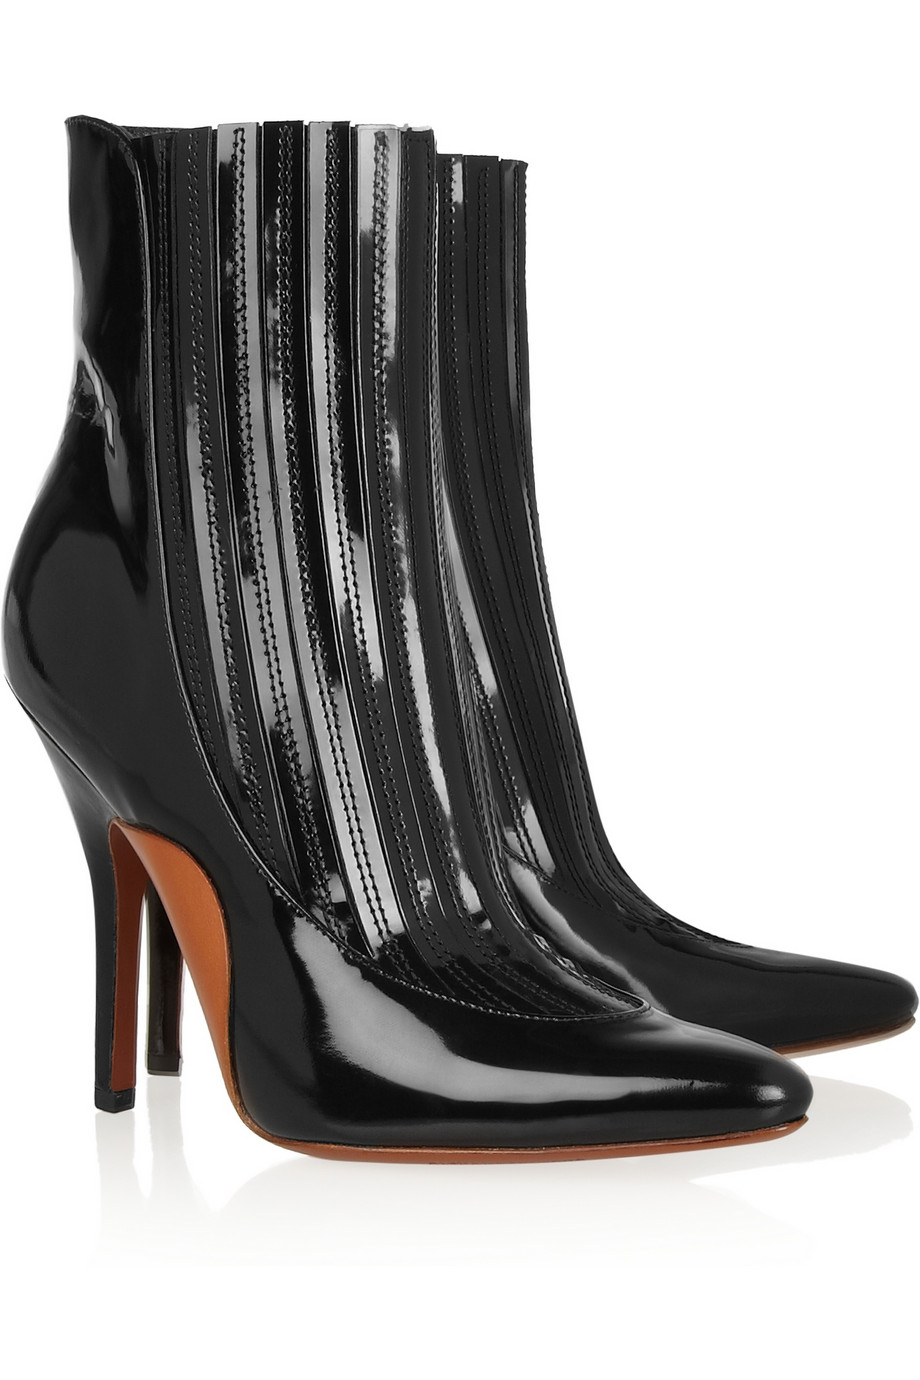 Alexander Wang Patent Leather Boots RYYRVTvduq